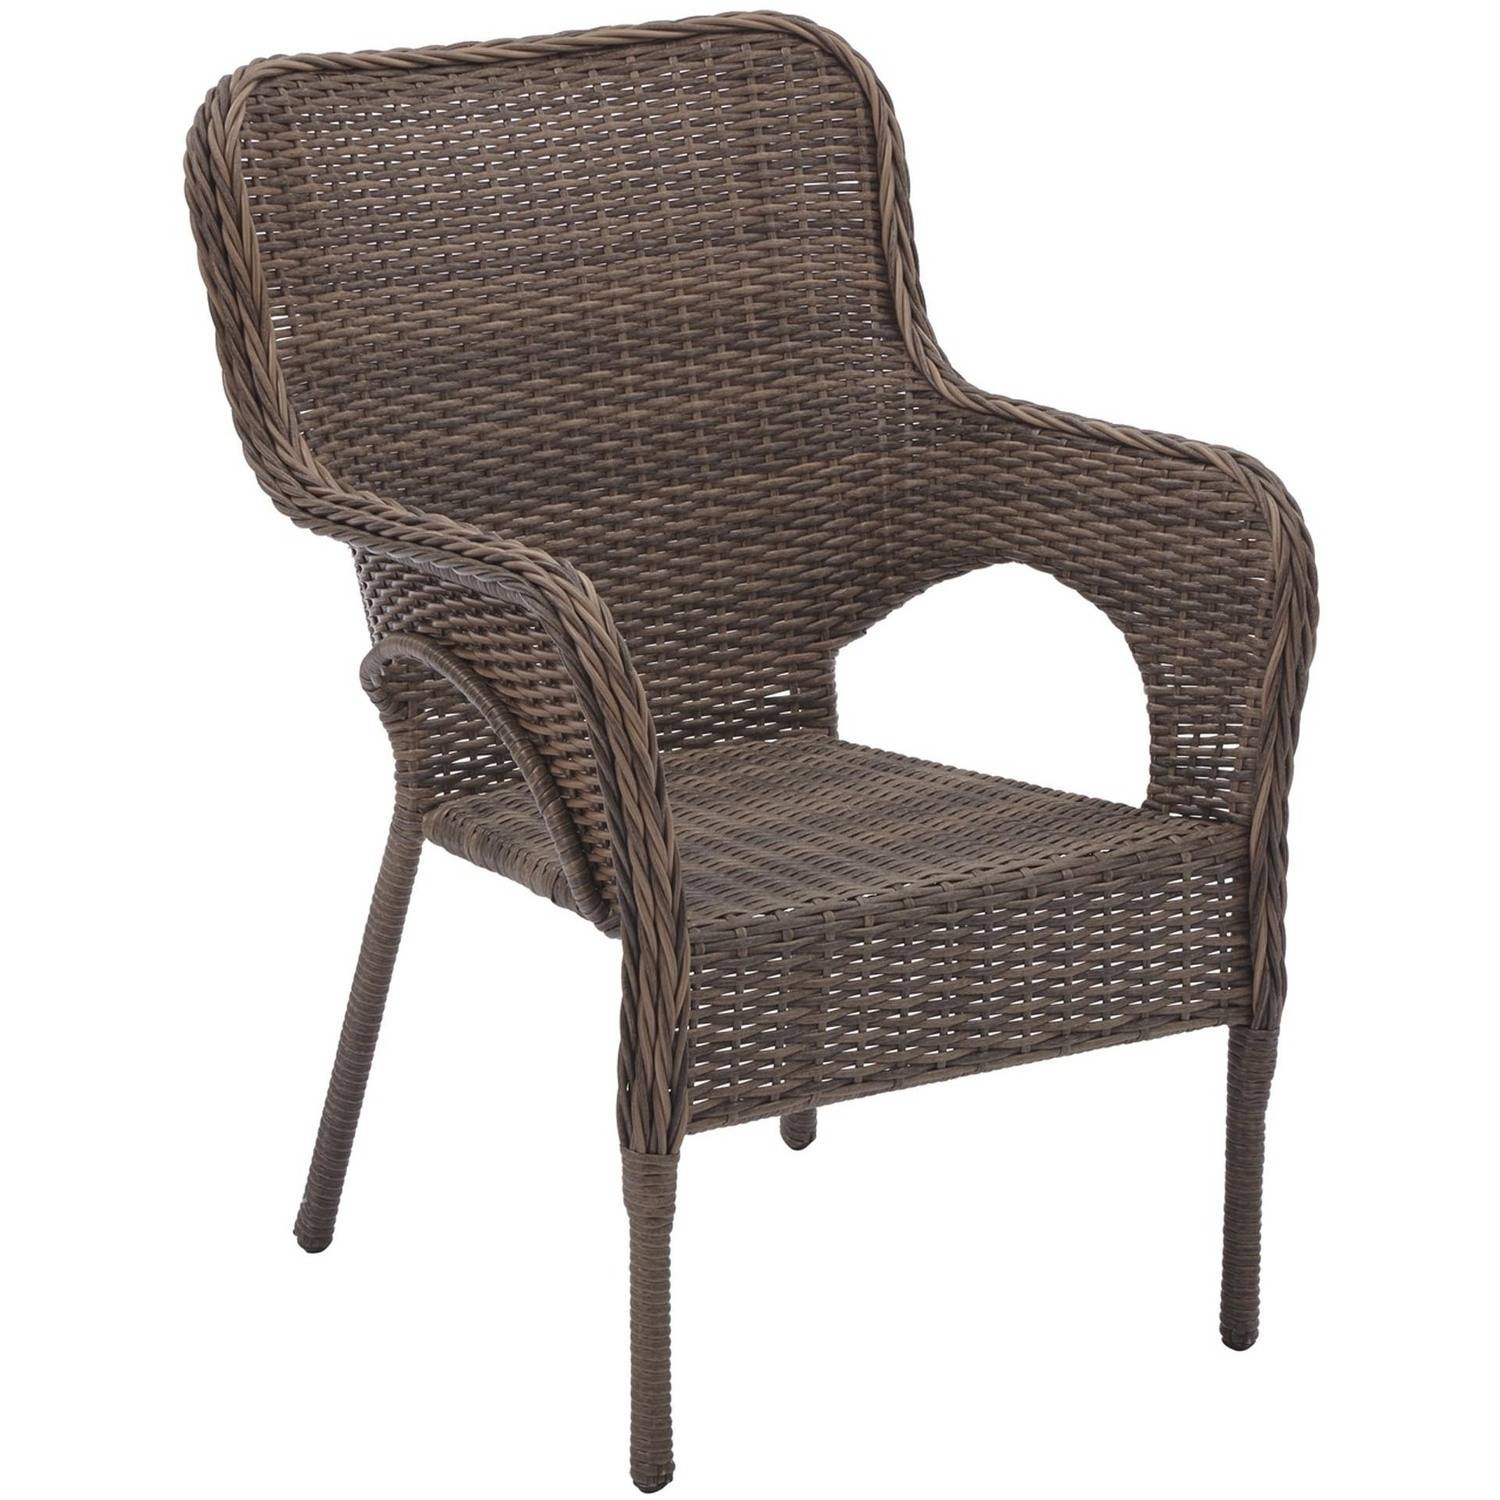 better homes and gardens camrose farmhouse mix and match stacking wicker chairs set of 2 walmartcom